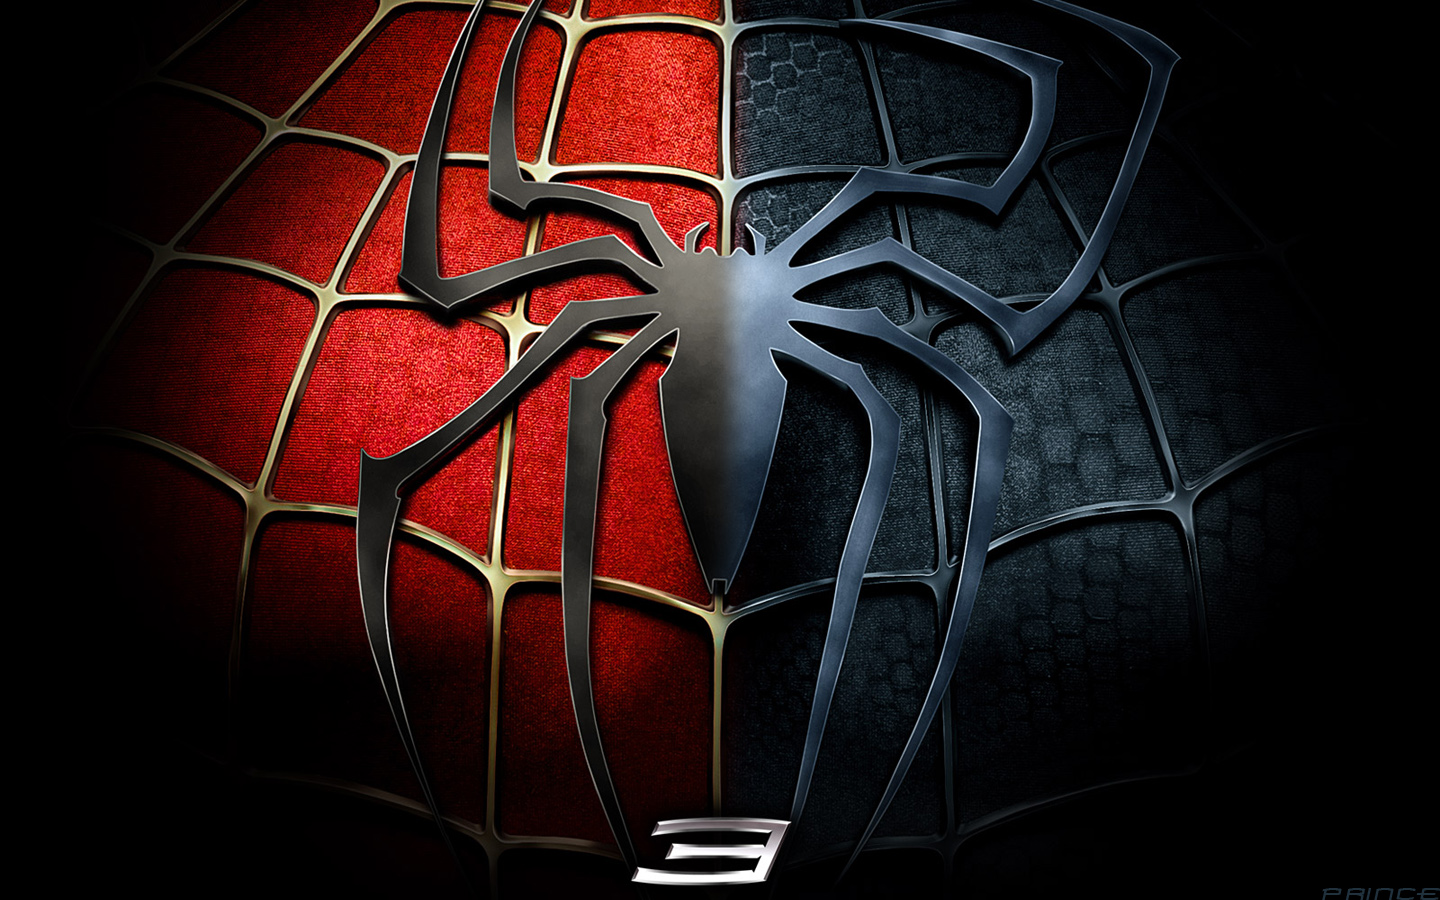 Spider man 3 wallpapers spider man wallpaper Amazing Wallpapers 1440x900